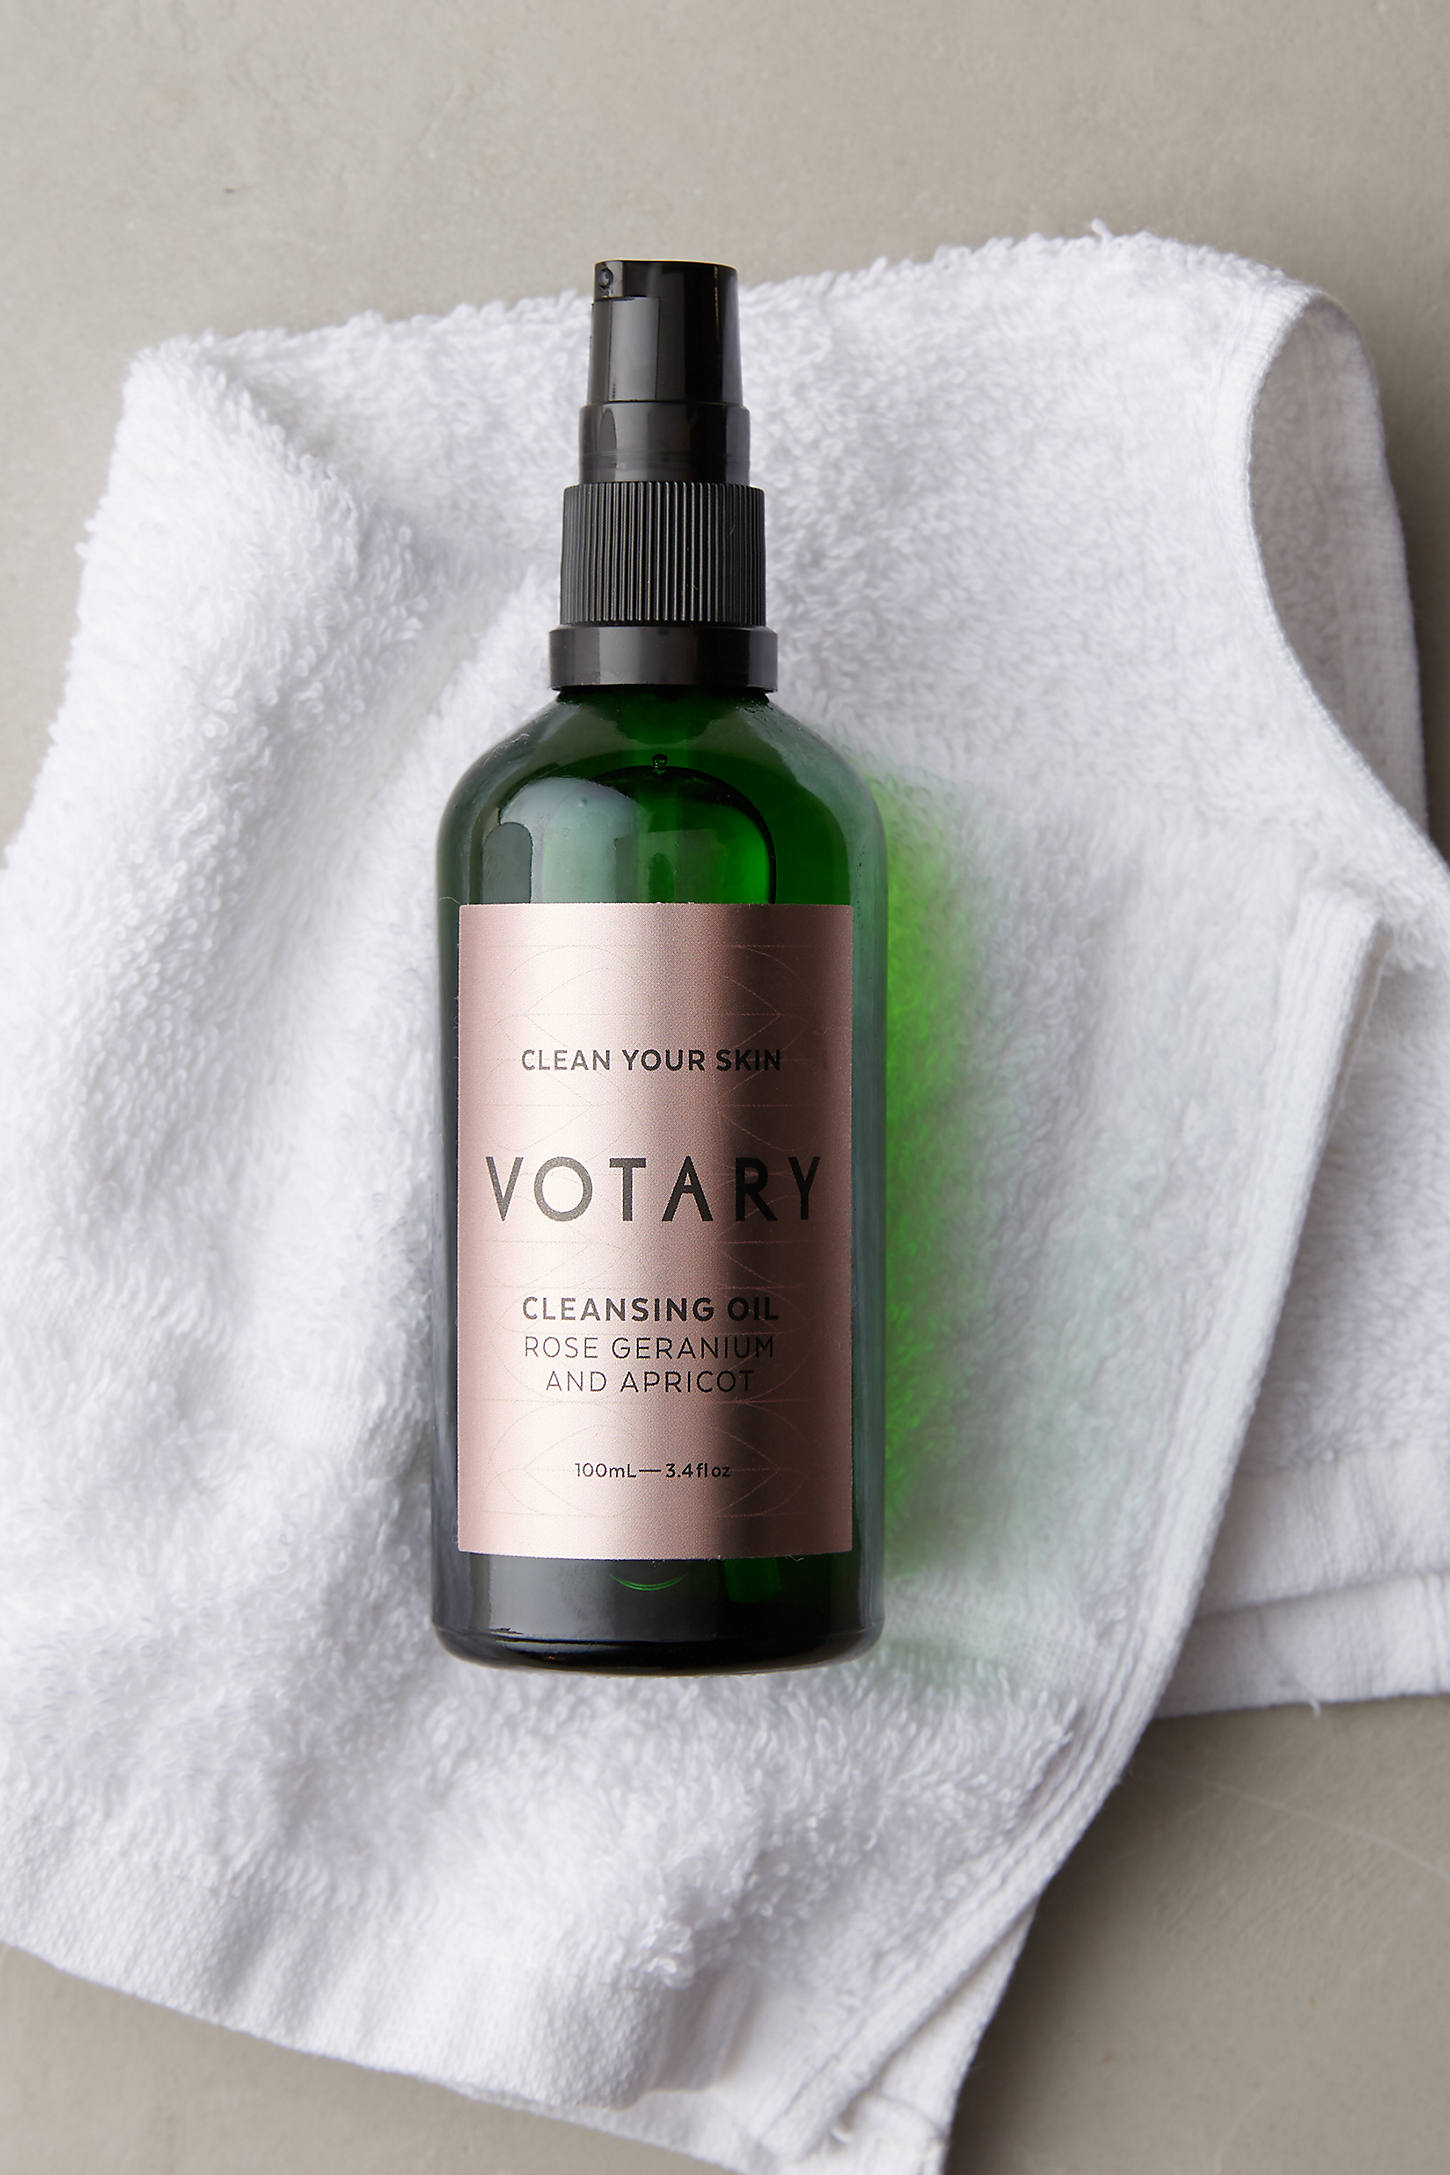 Votary Cleansing Oil